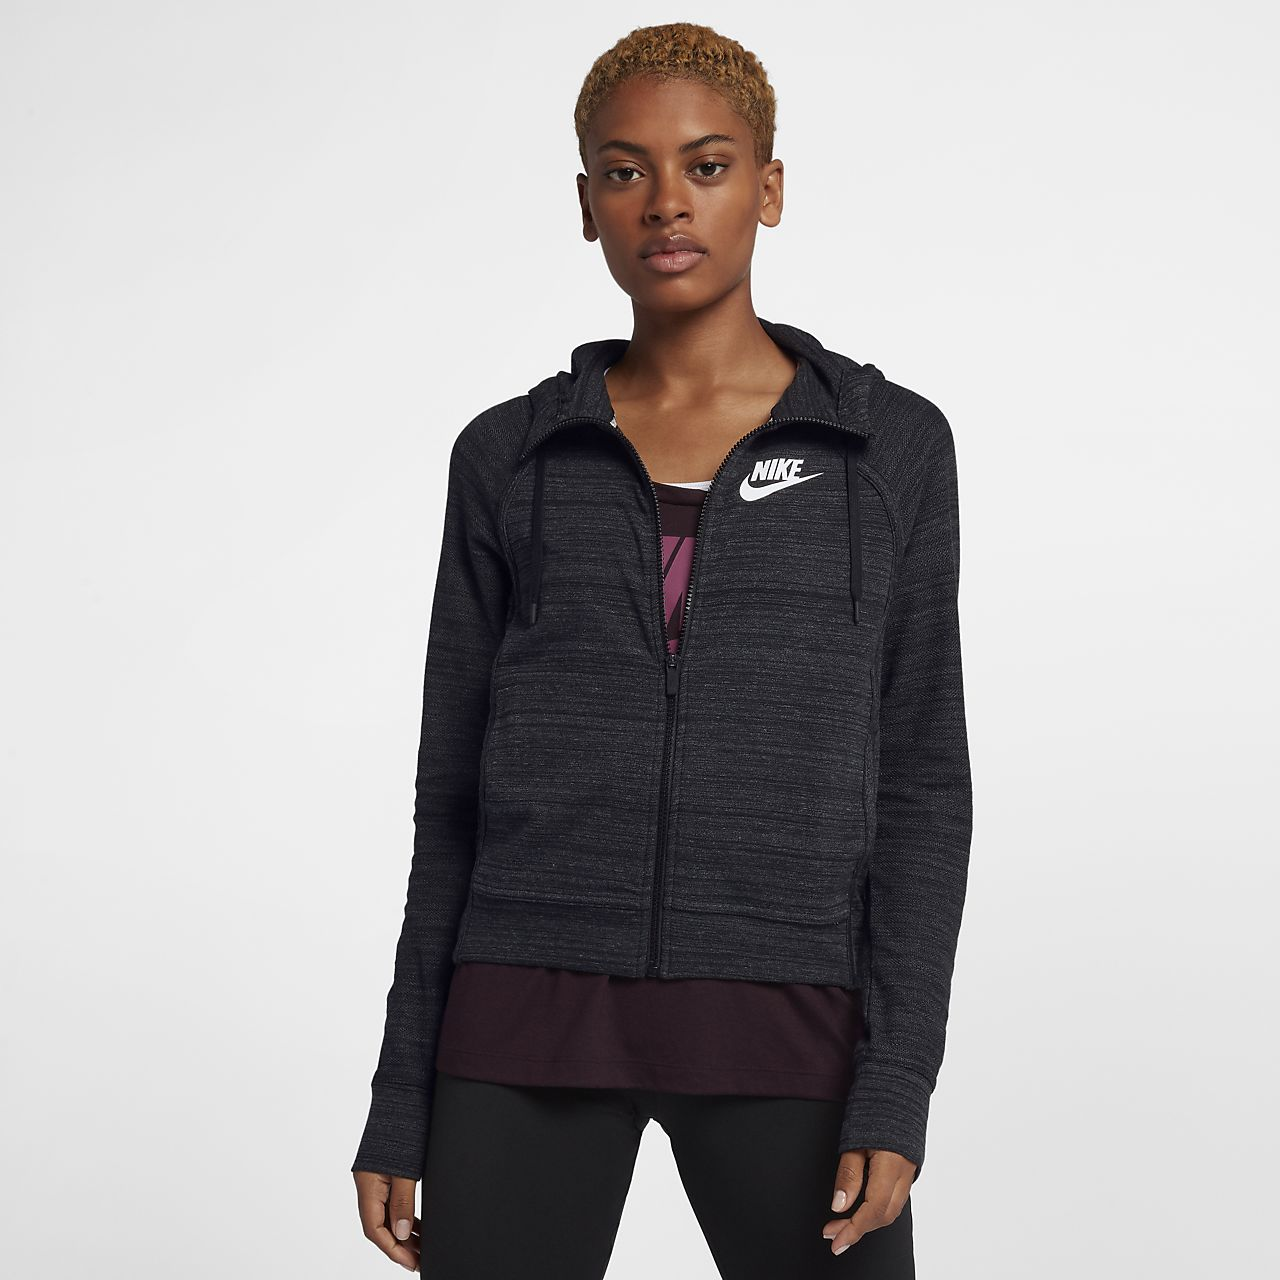 Nike Sportswear Advance 15 Women's Knit Jacket